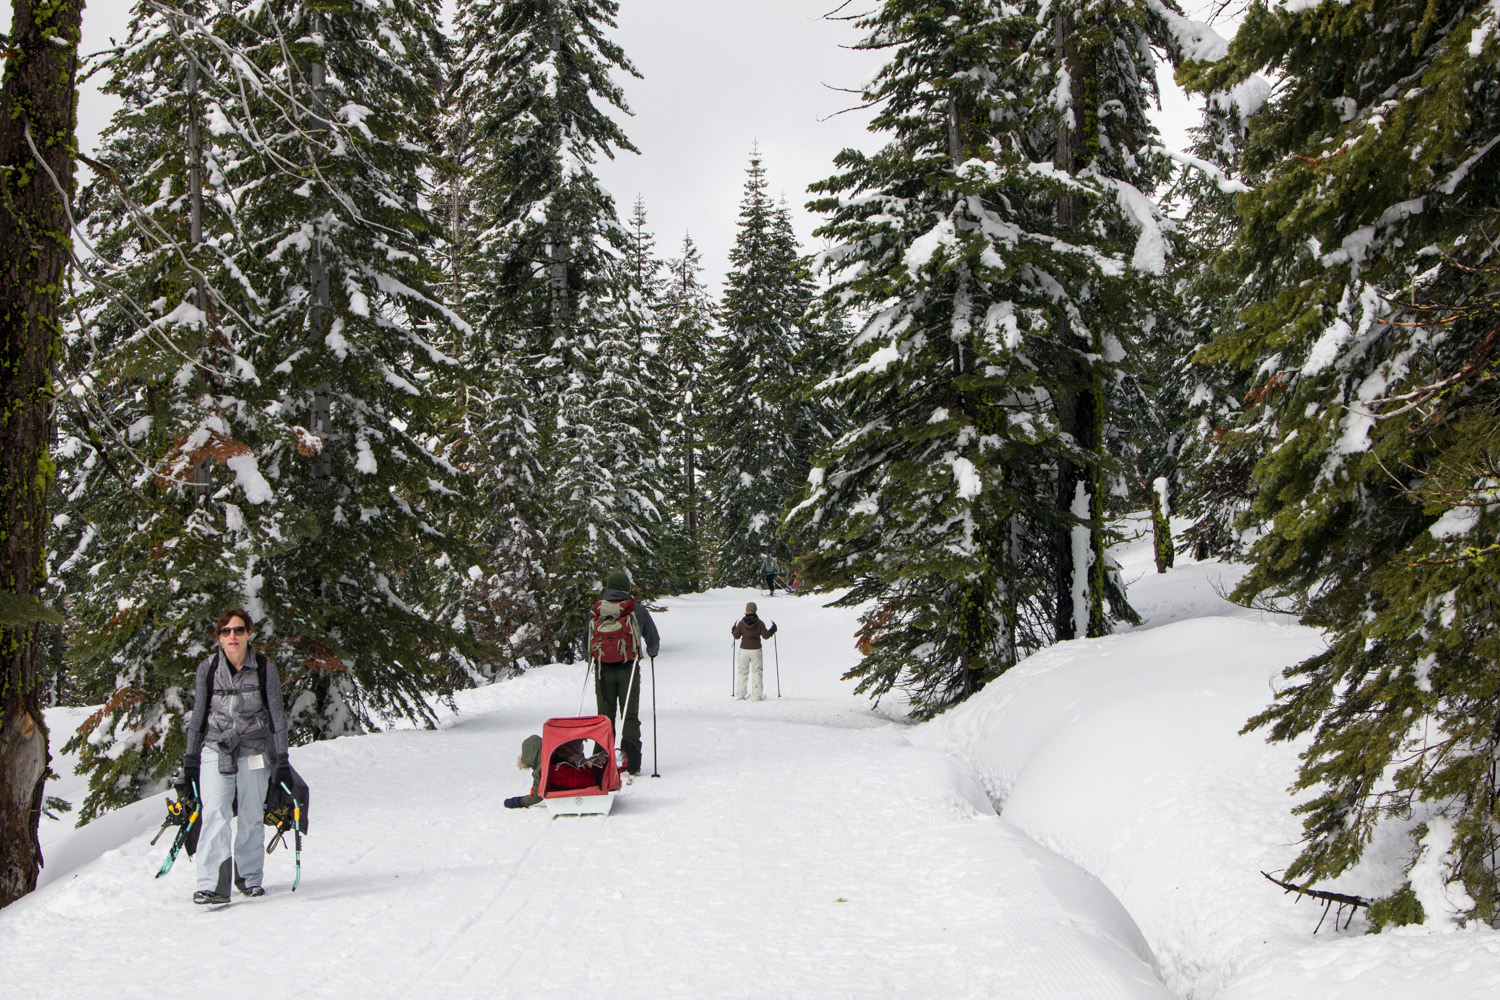 People snowshoeing and cross country skiing in Badger Pass Ski Area in Yosemite